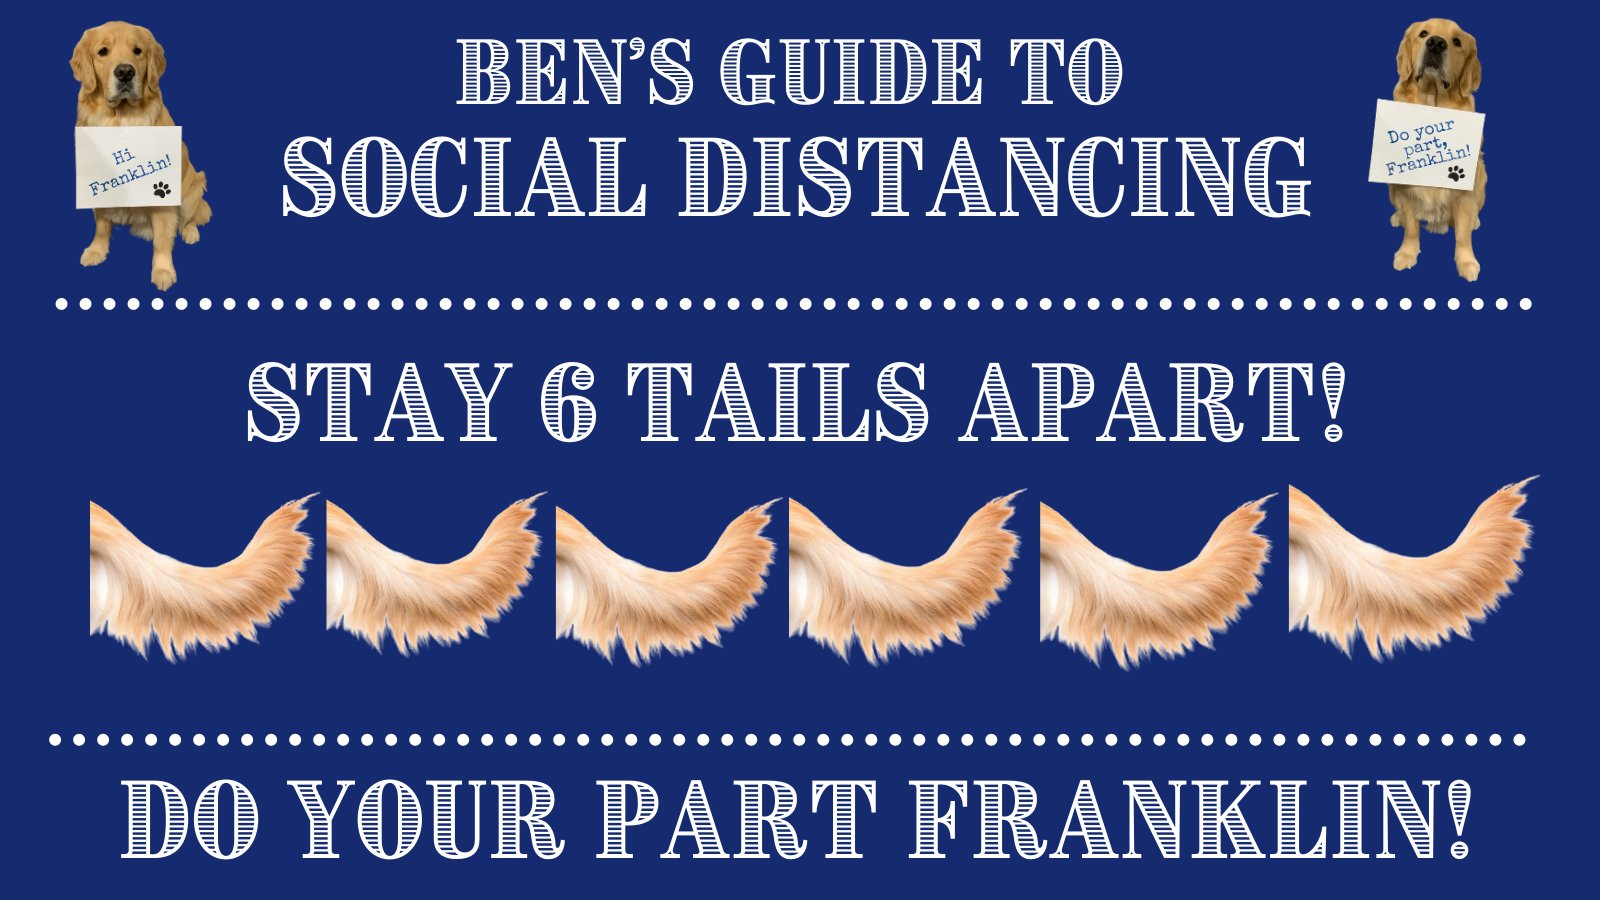 Town of Franklin, MA: Ben's guide to social distancing